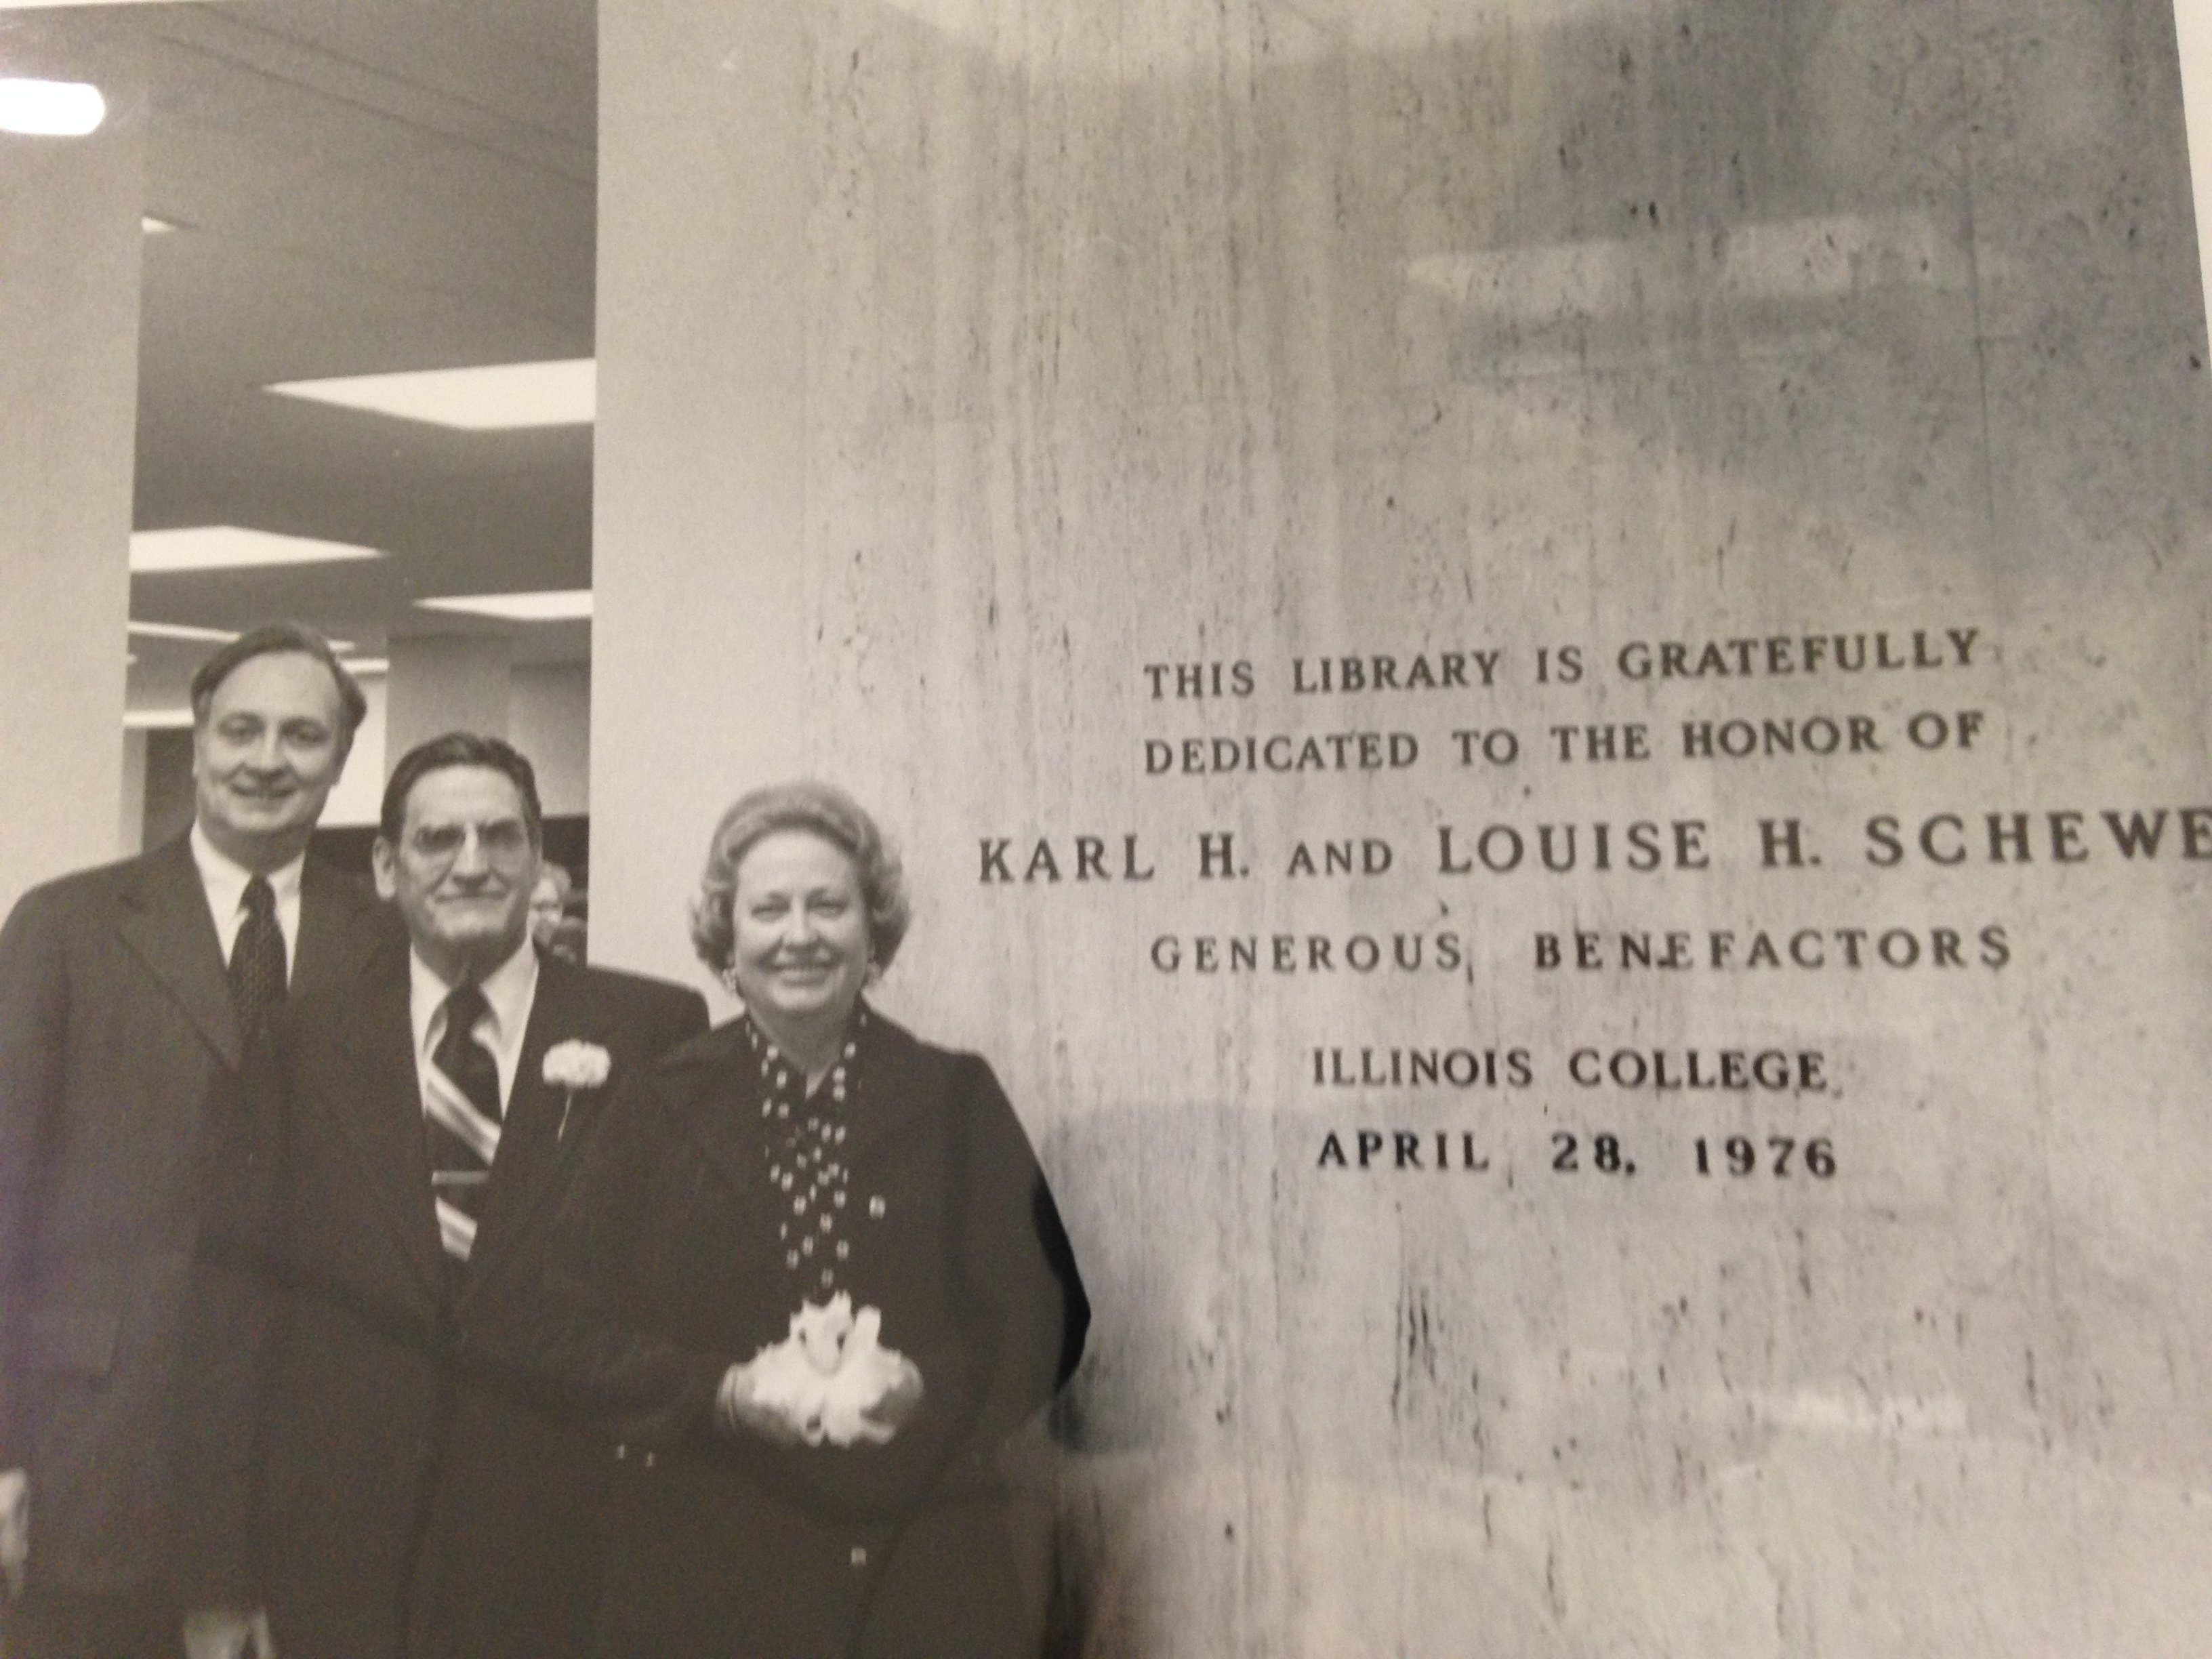 This picture shows President Sturtevant, Karl and Louise H. Schewe on the dedication day of the Schewe Library.